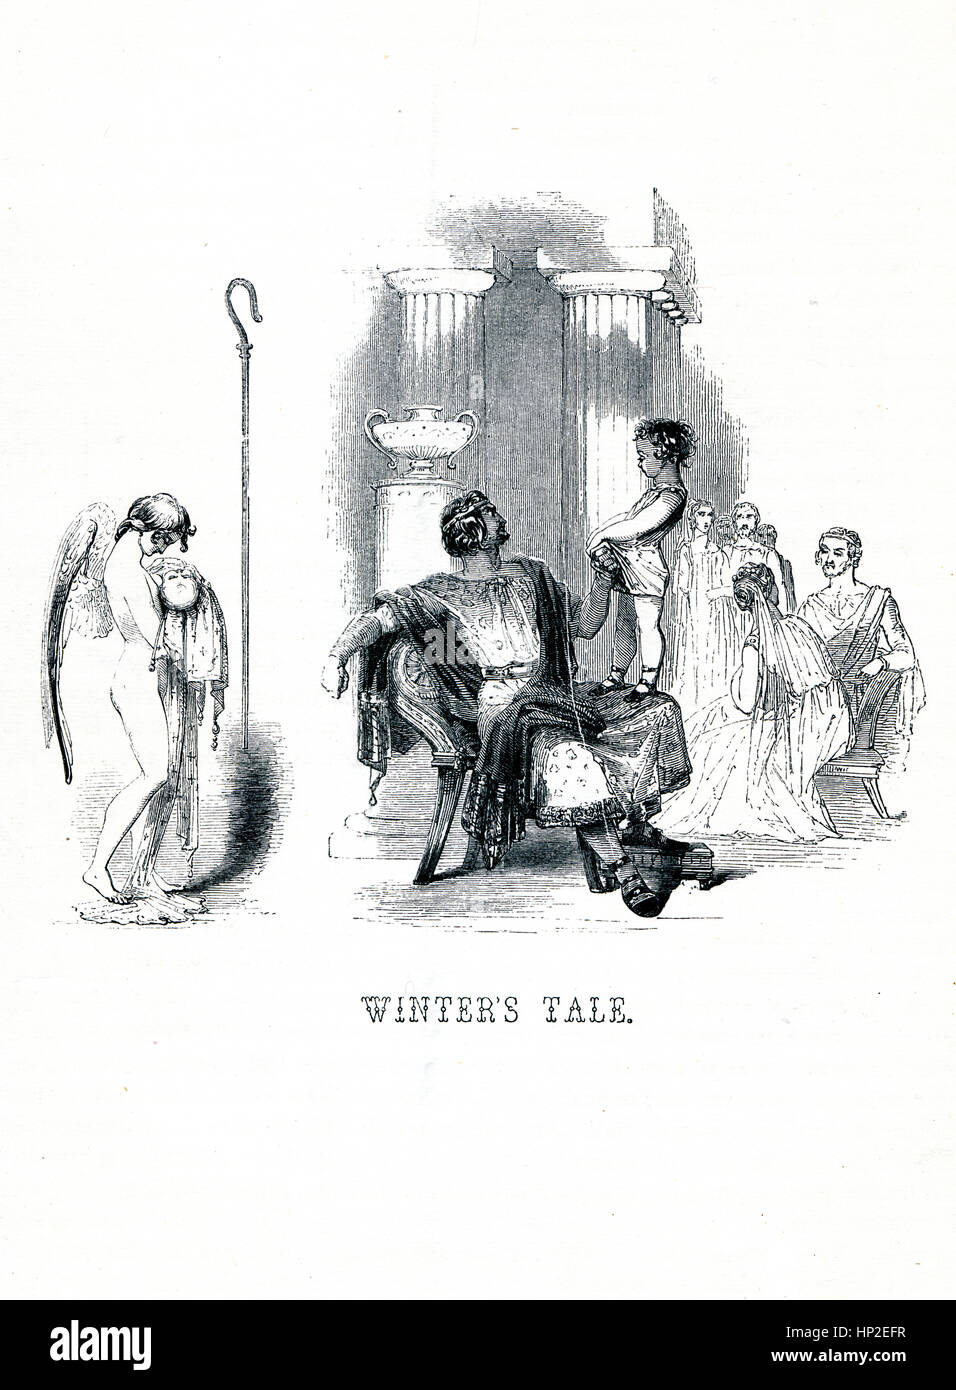 The Winters Tale, Victorian book frontispiece for the play by William Shakespeare from the 1849 illustrated book - Stock Image